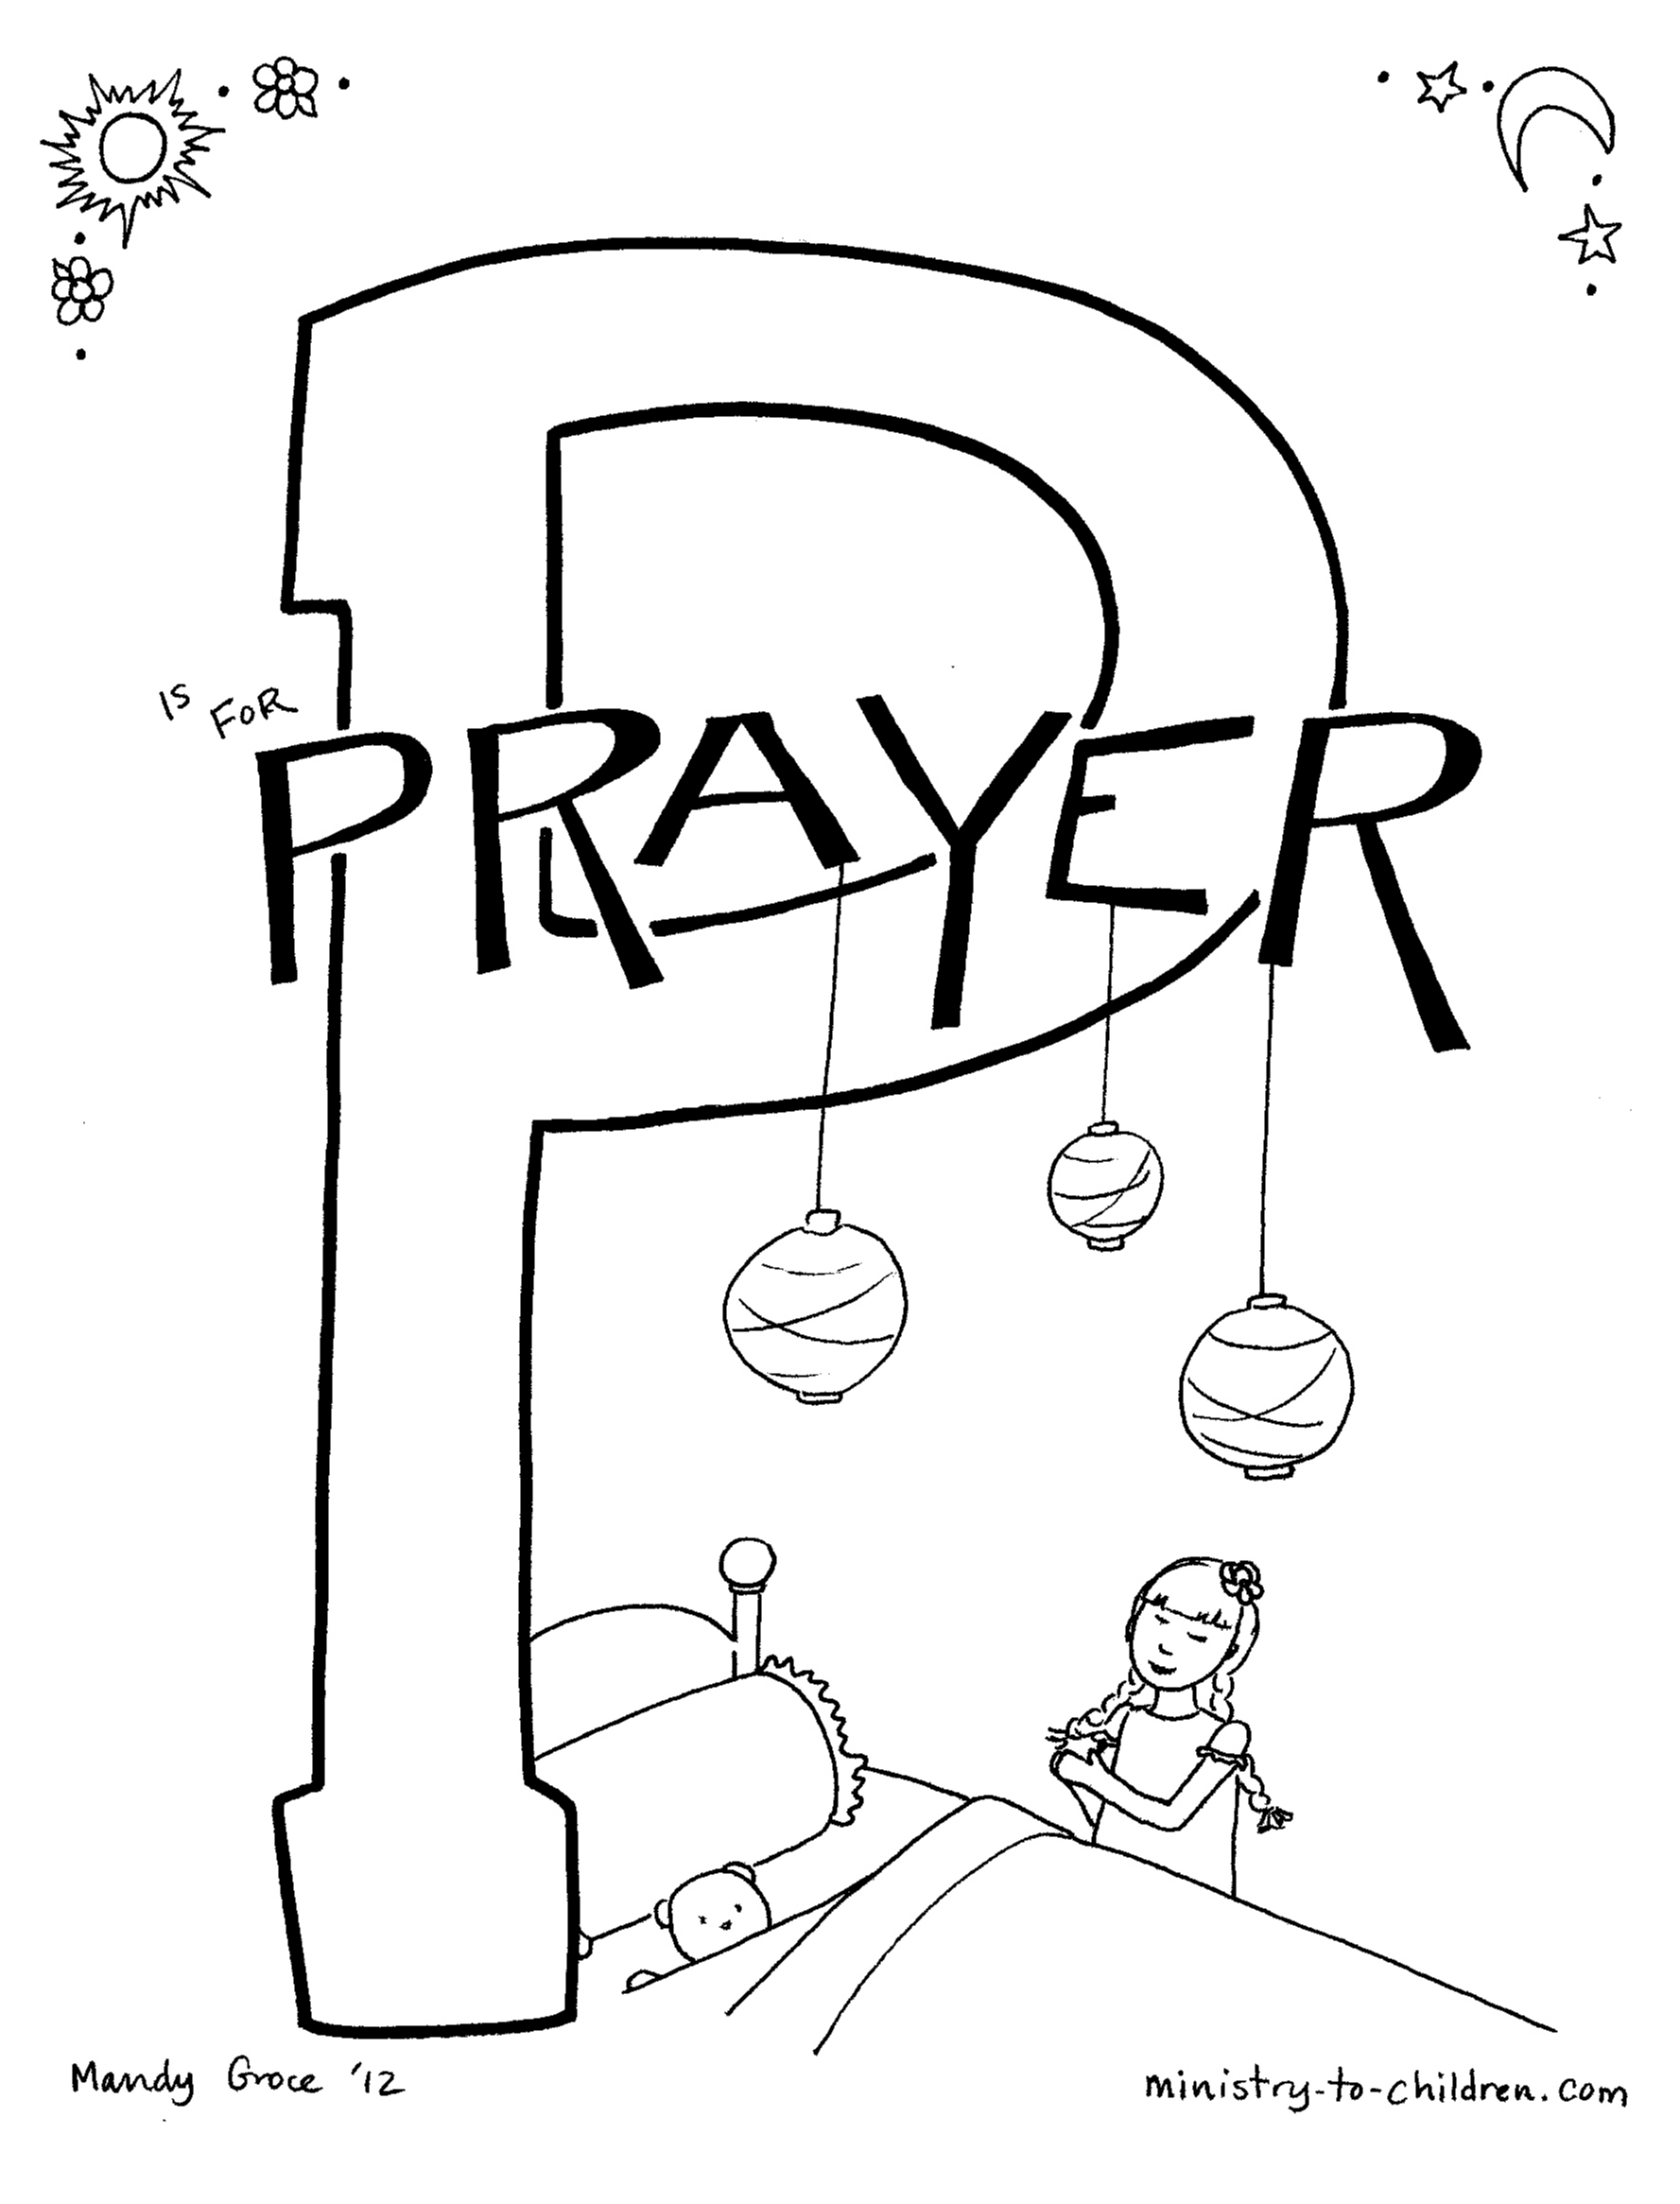 alphabet bible coloring pages Bible Coloring Pages